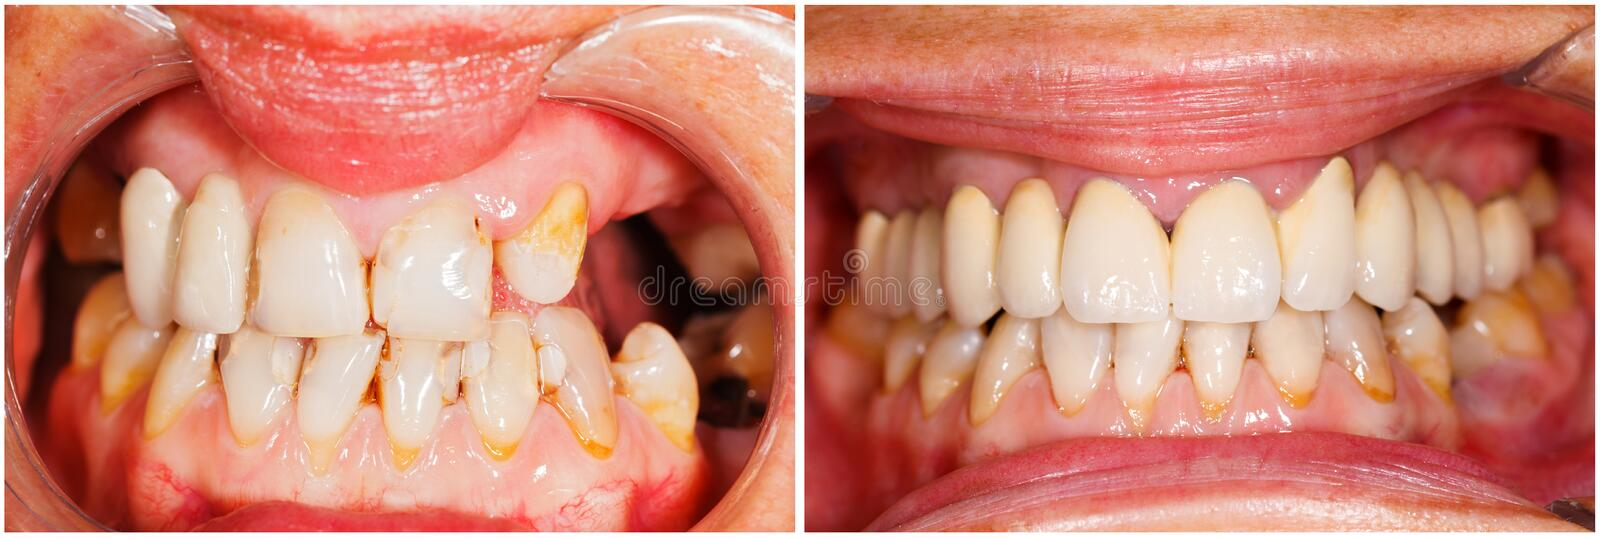 Tanden before and after behandeling stock afbeelding